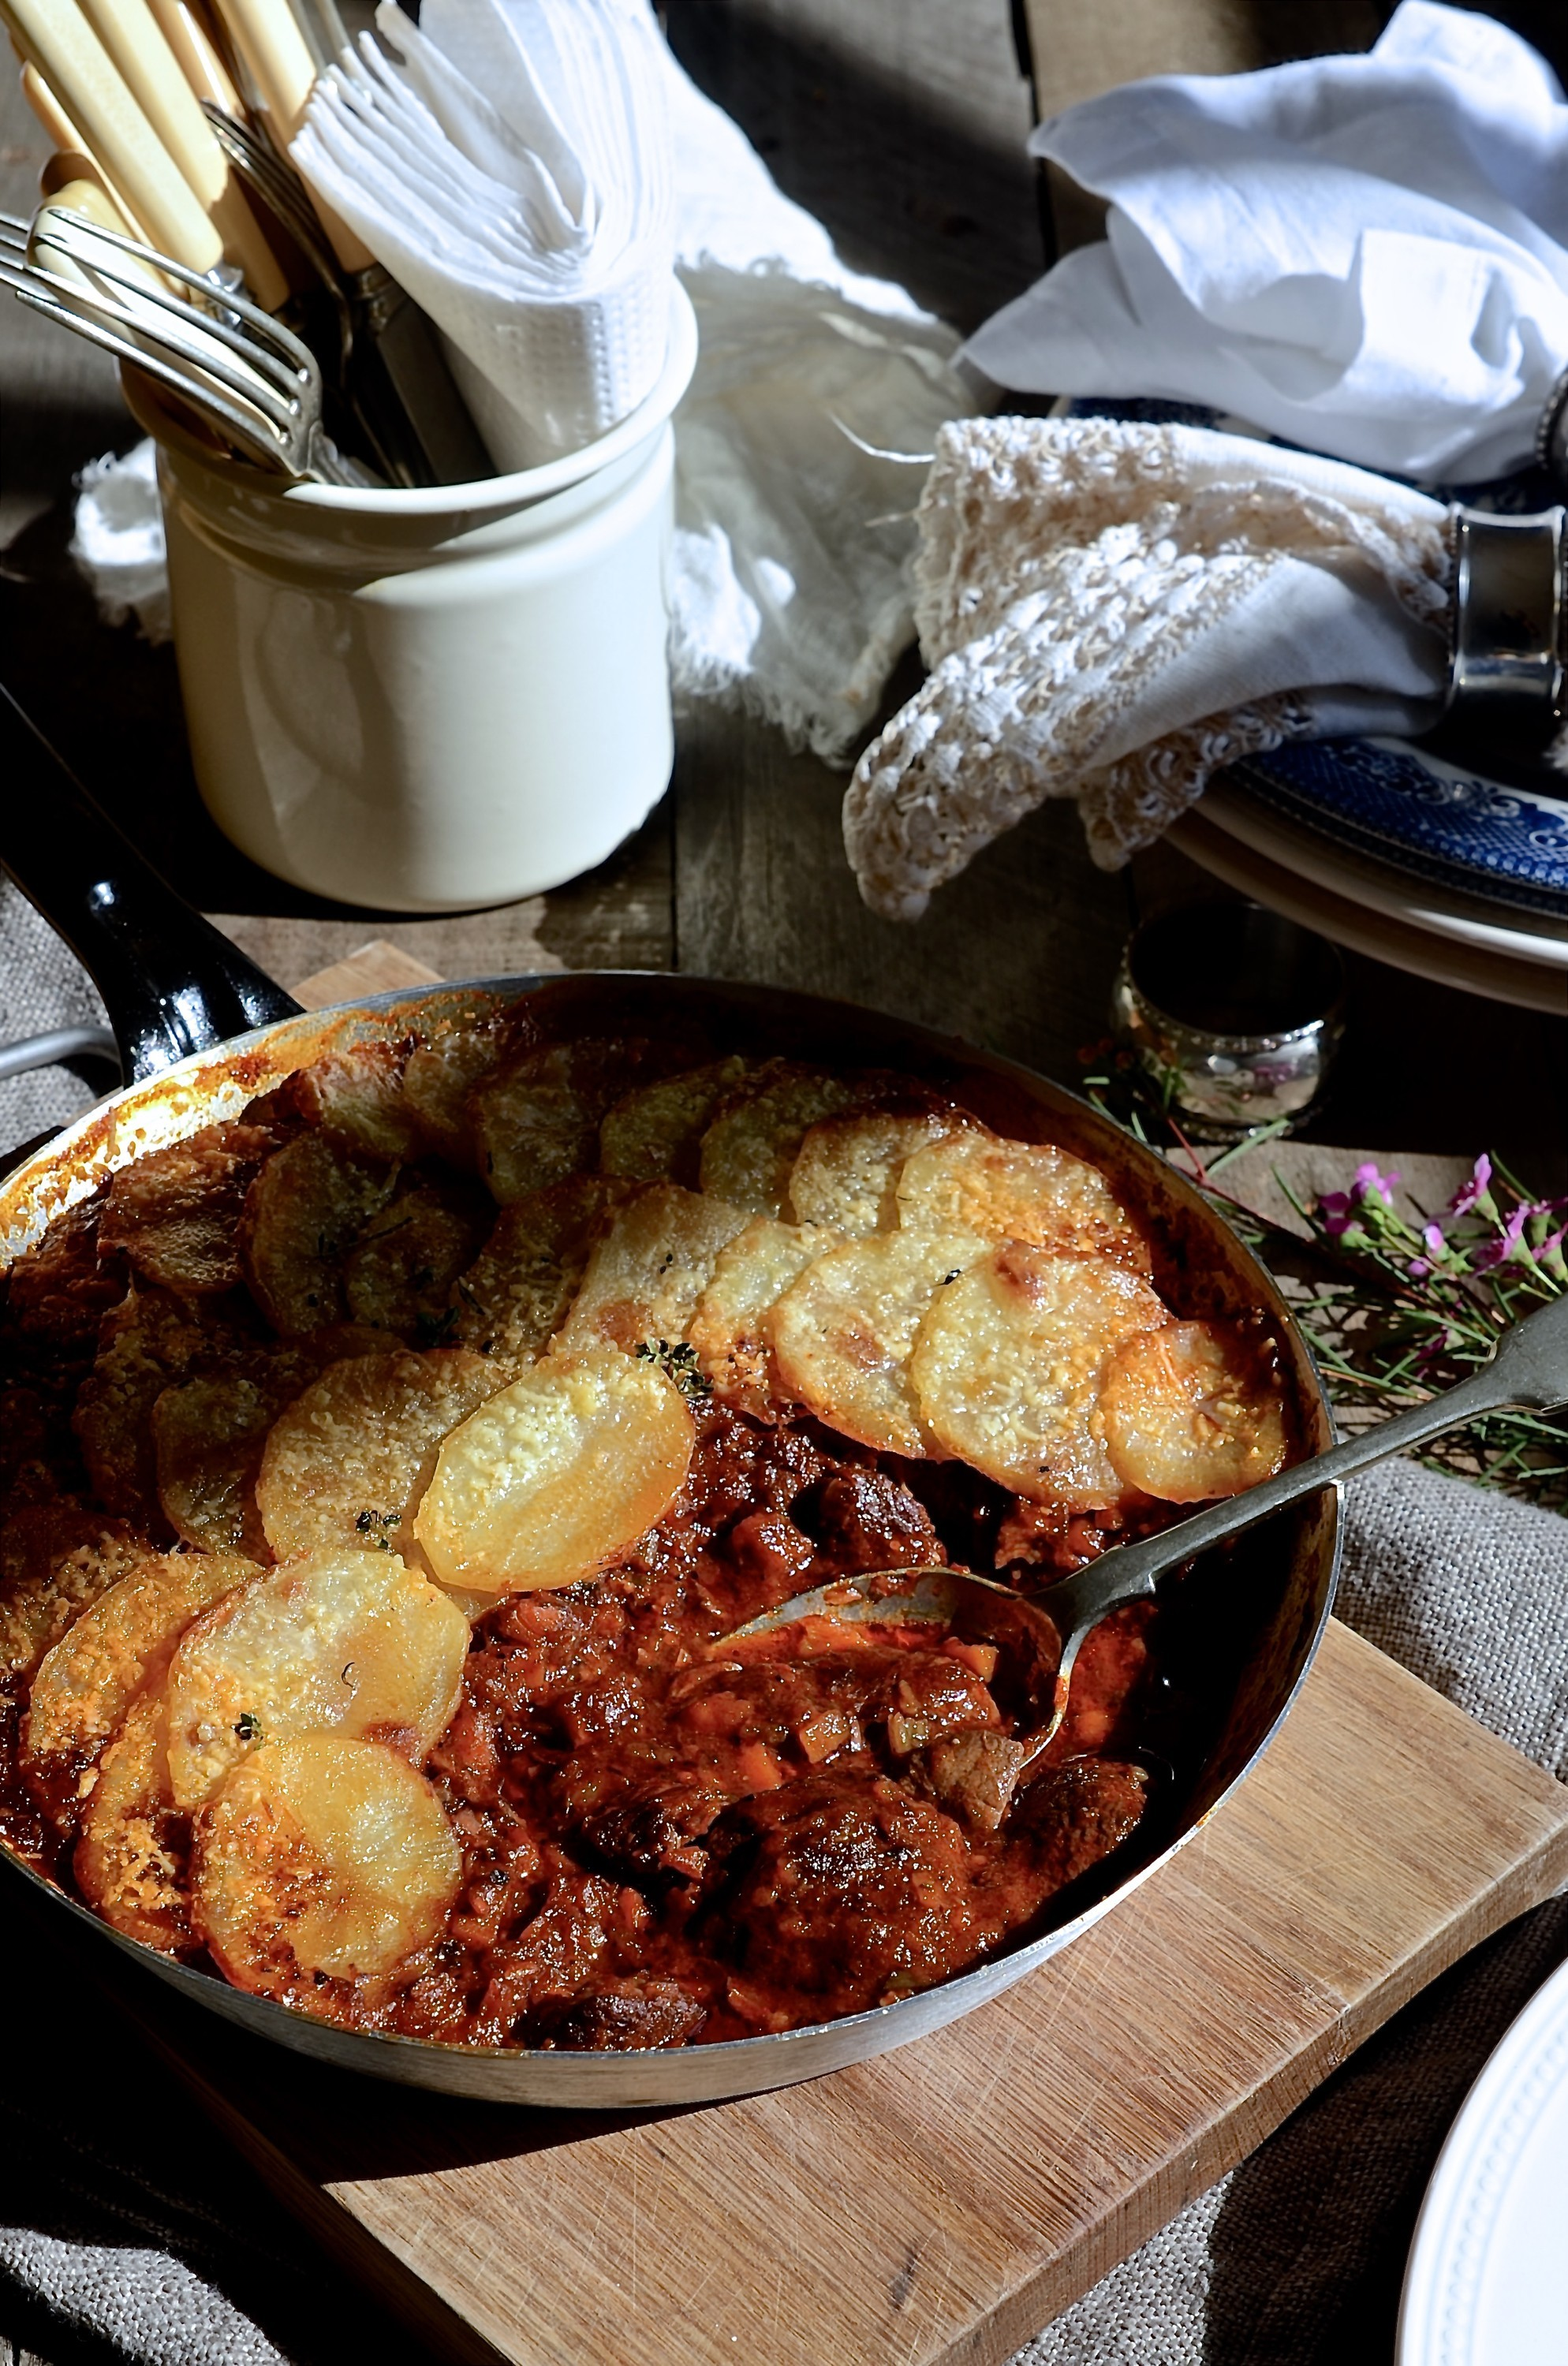 Red wine beef stew with potato gratin | Bibbyskitchen recipes